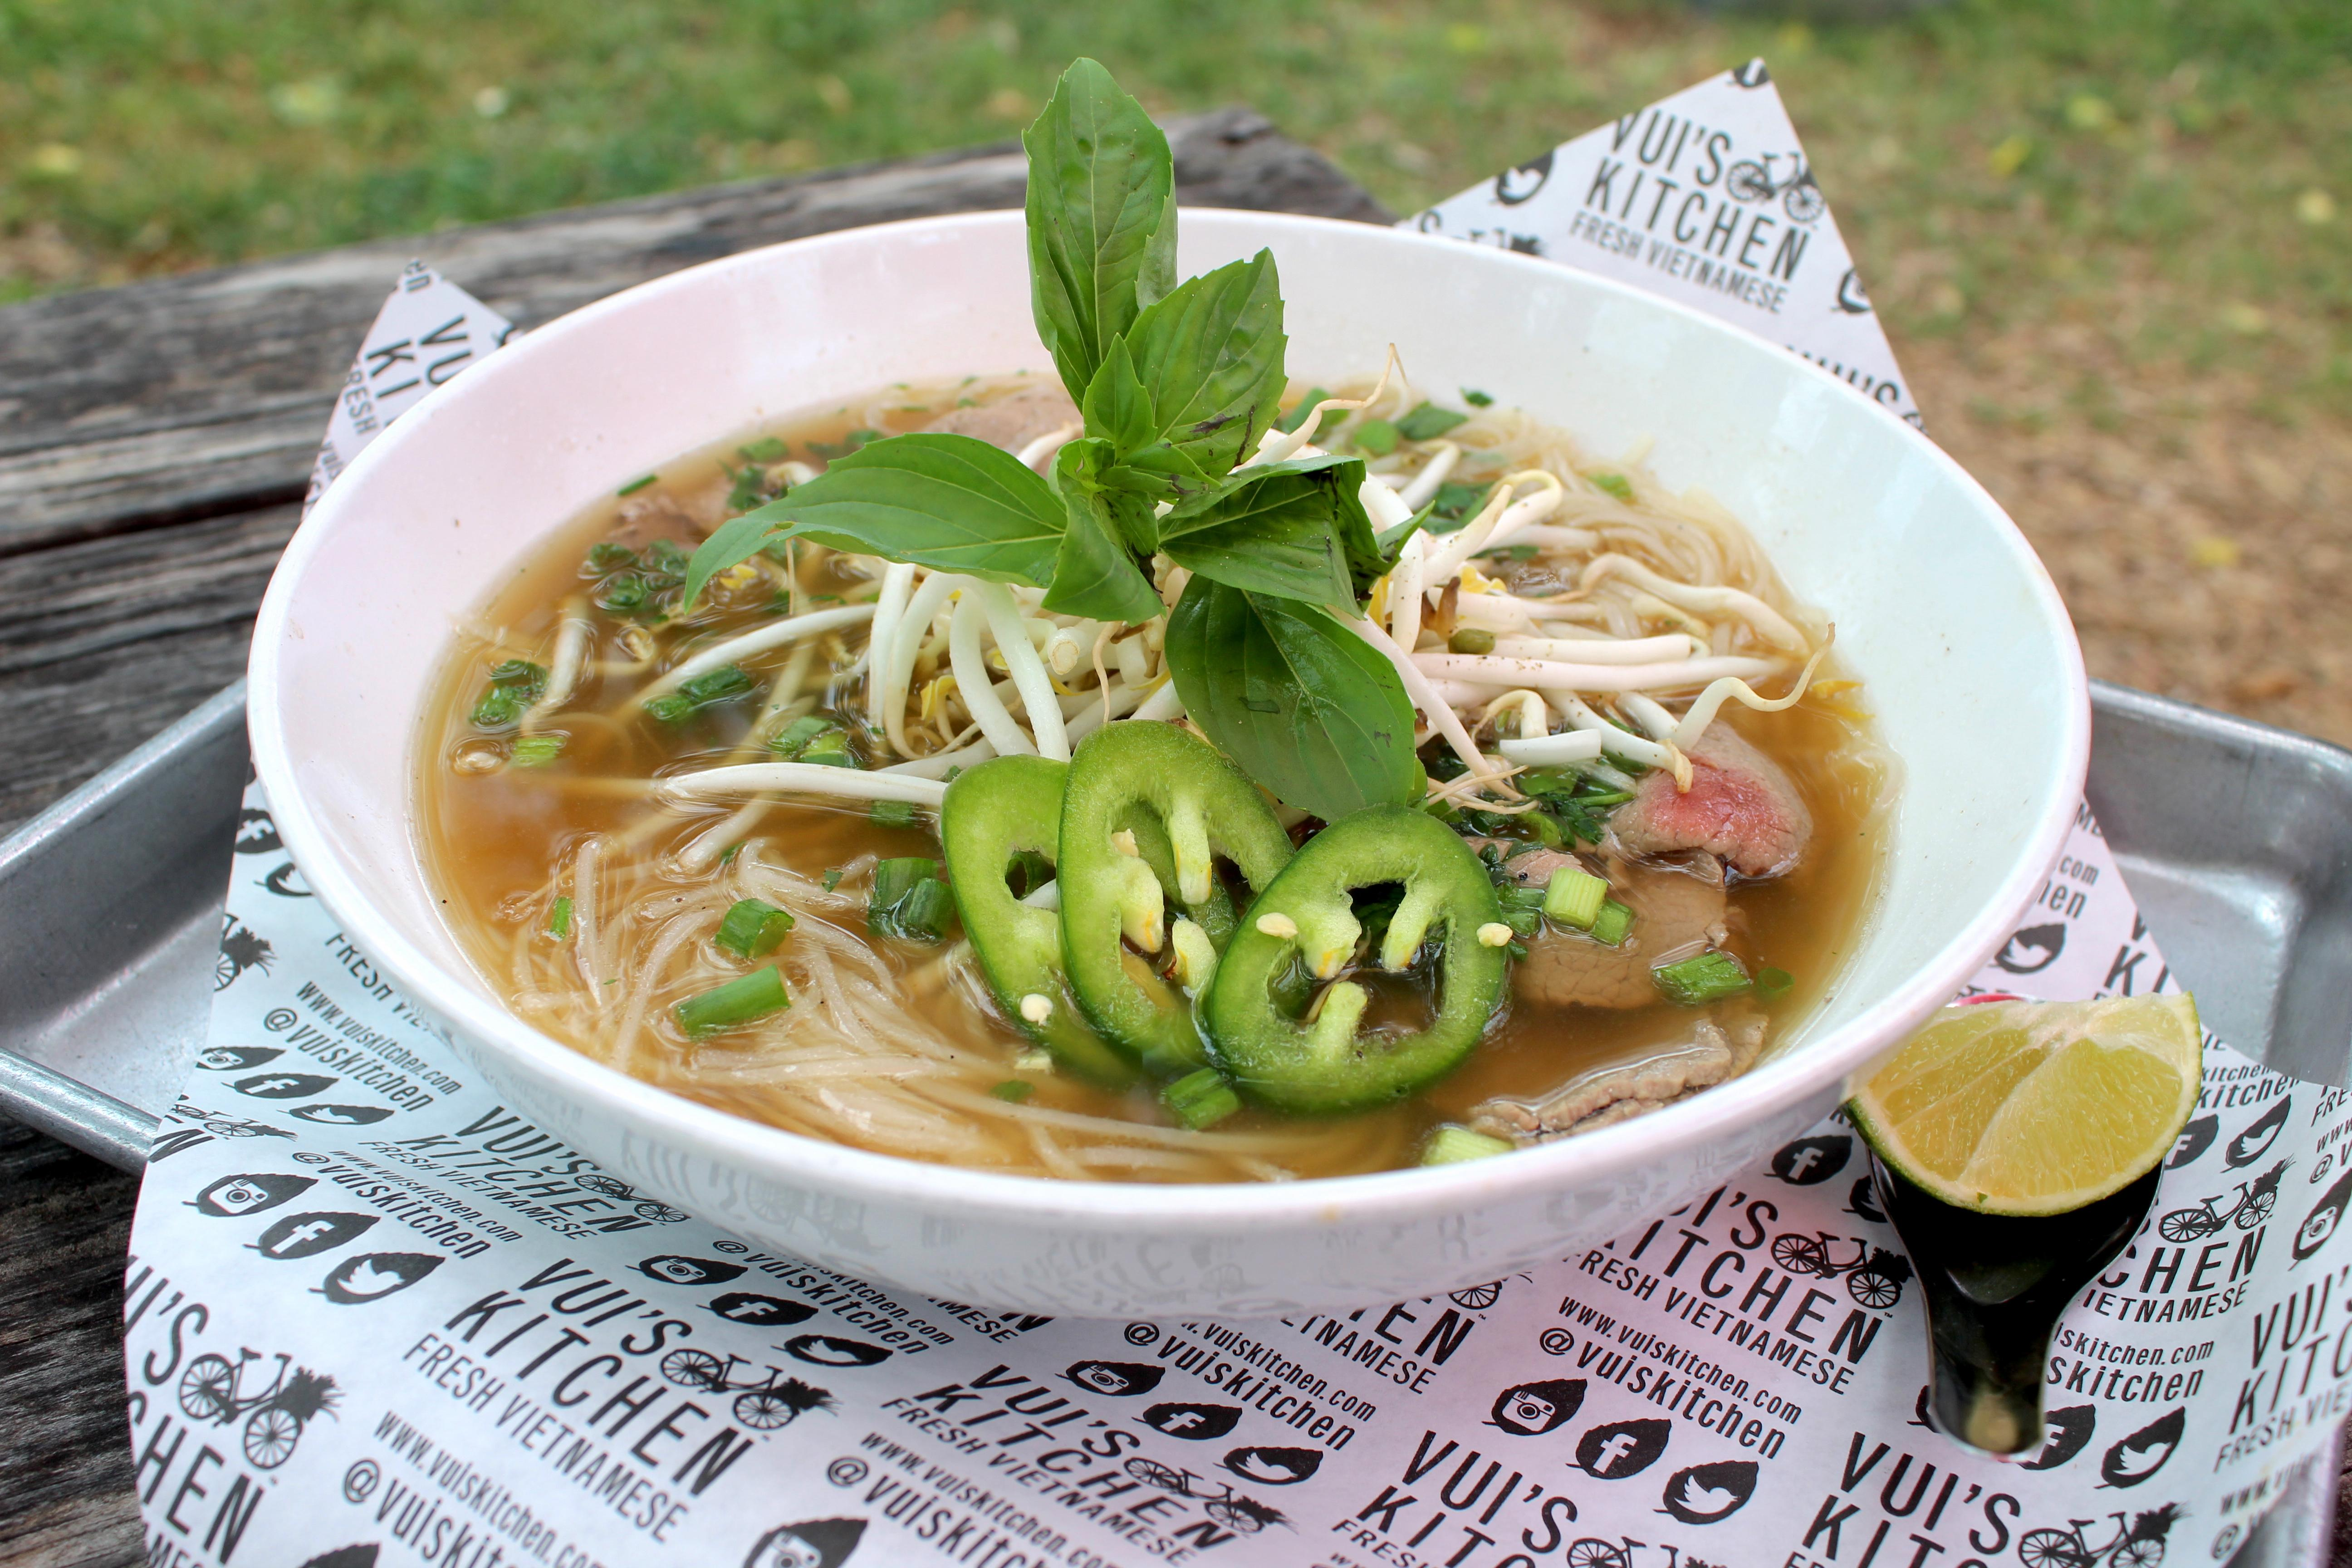 The pho at Vui's Kitchen is made with bone broth simmered for 12 hours. (Dylan Skye Aycock/Community Impact Newspaper)